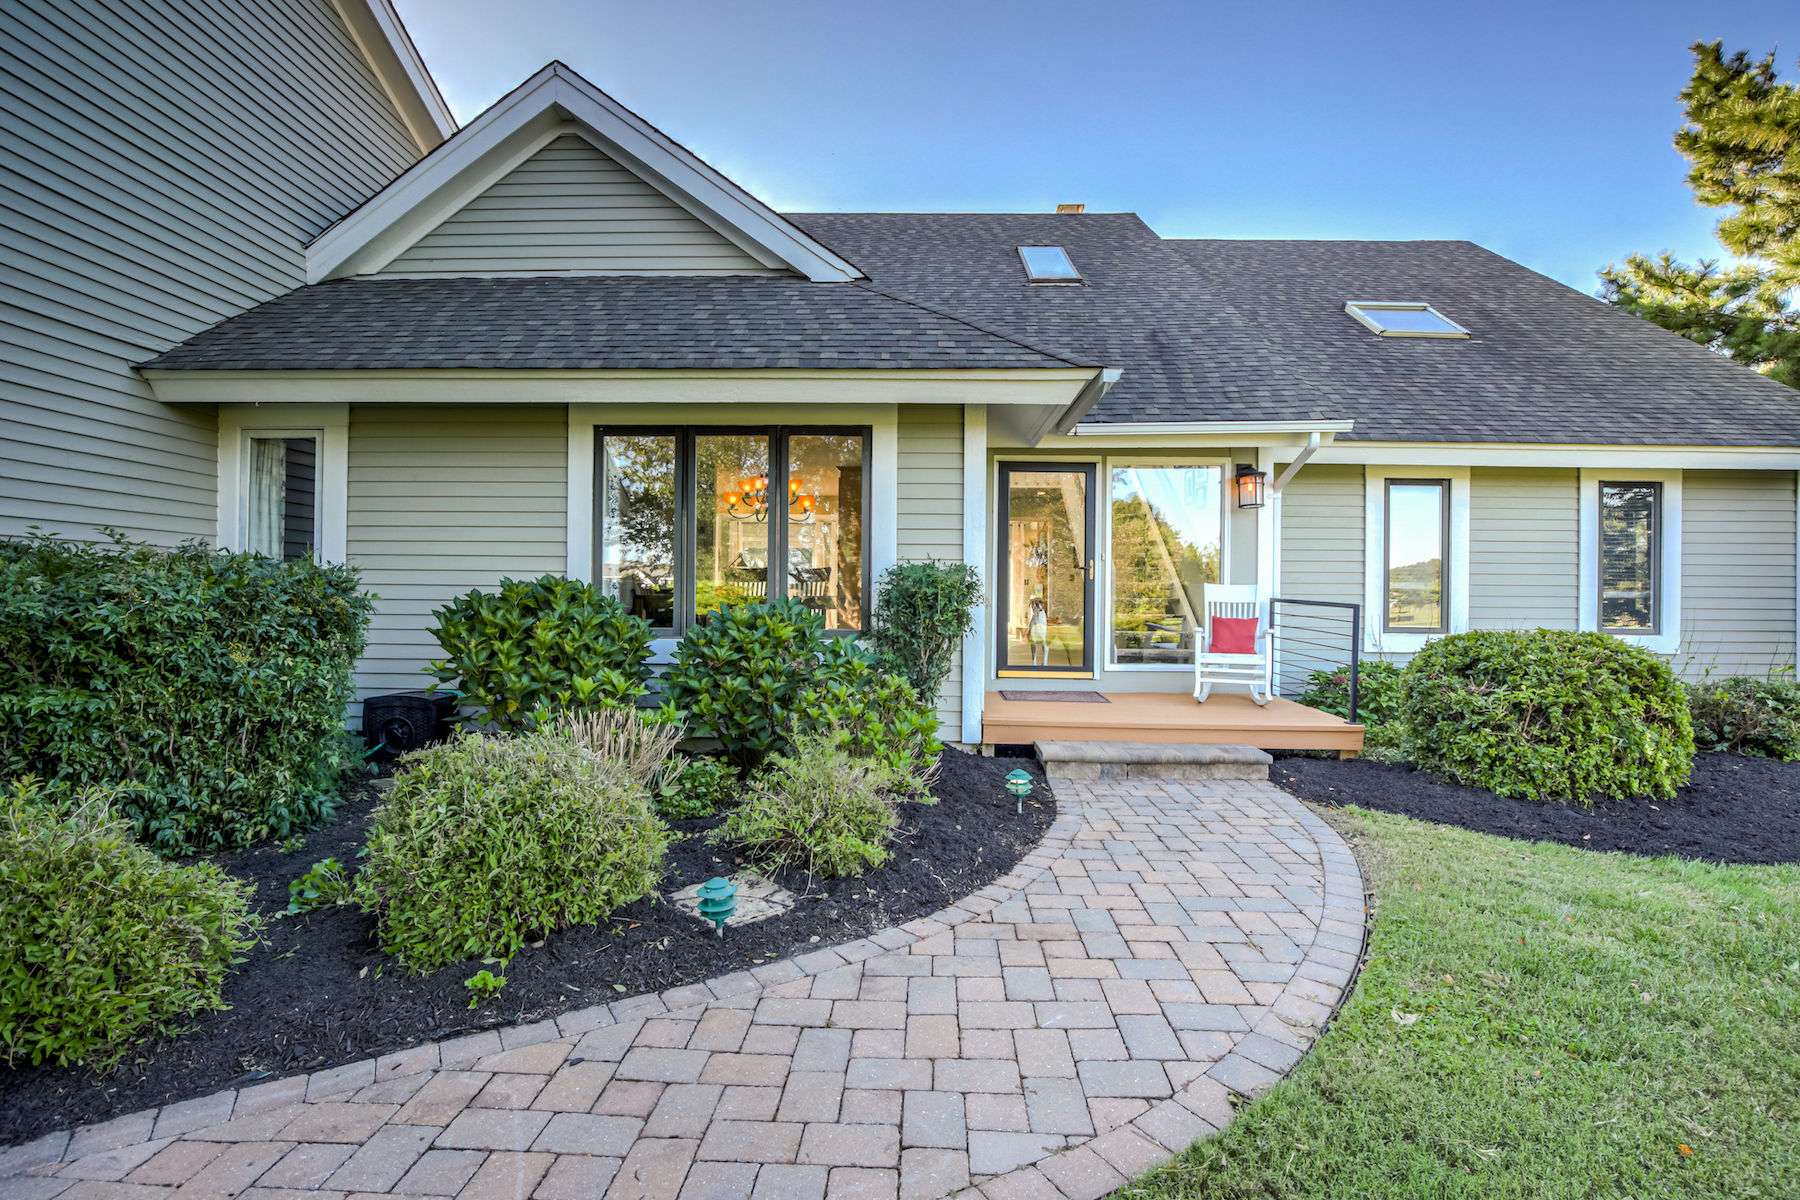 Single Family Homes のために 売買 アット Come Live the Lifestyle You Have Always Dreamed Of At the Cove Creek Club 102 Night Heron Court, Stevensville, メリーランド 21666 アメリカ